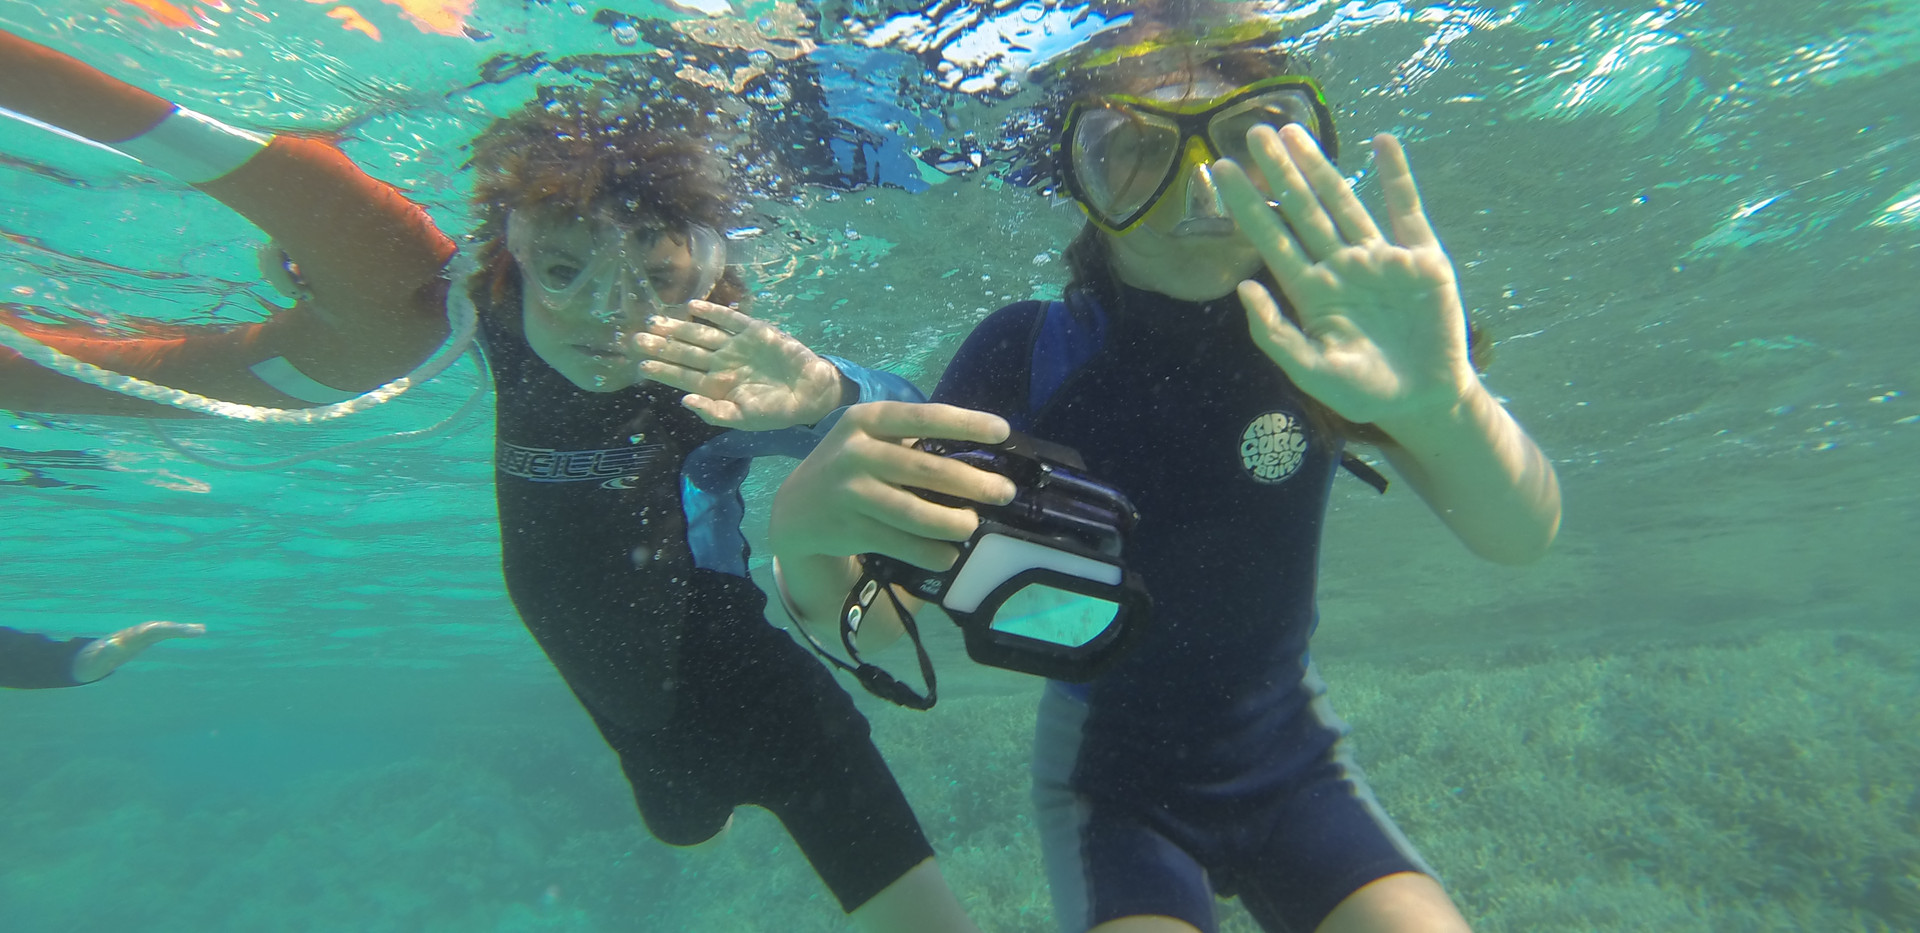 Snorkelling with the family